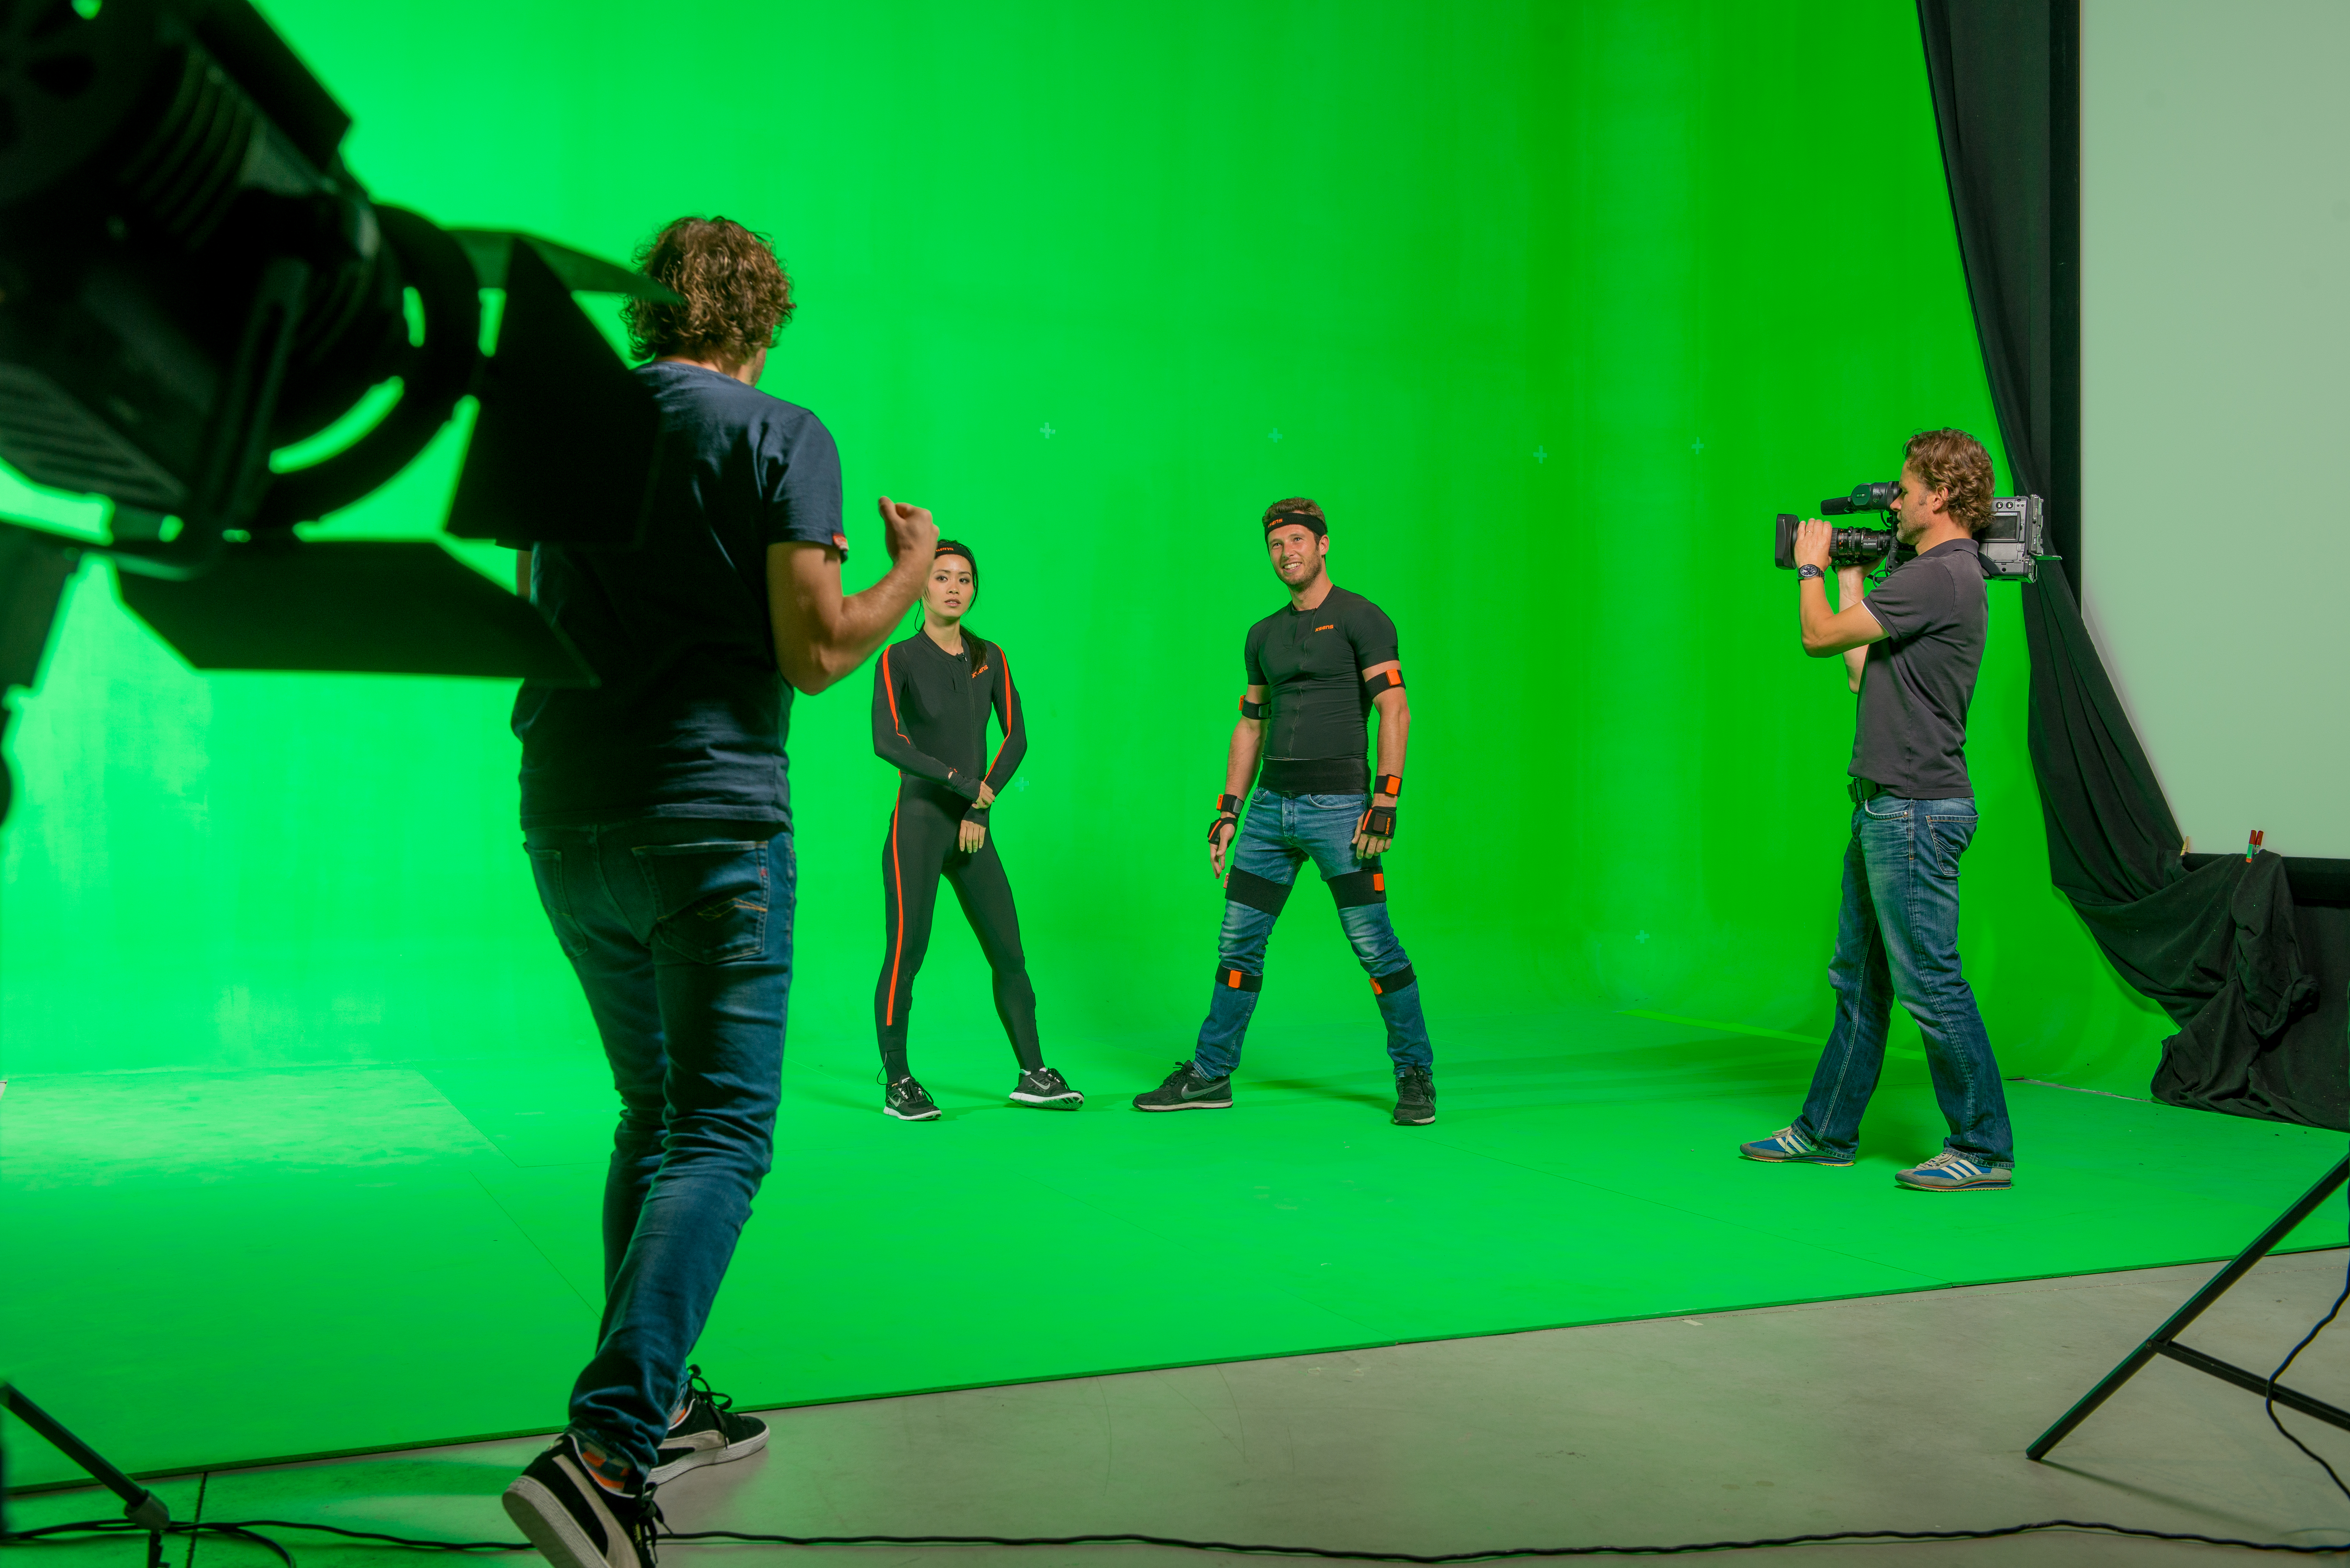 Motion Capture for Animation and VFX